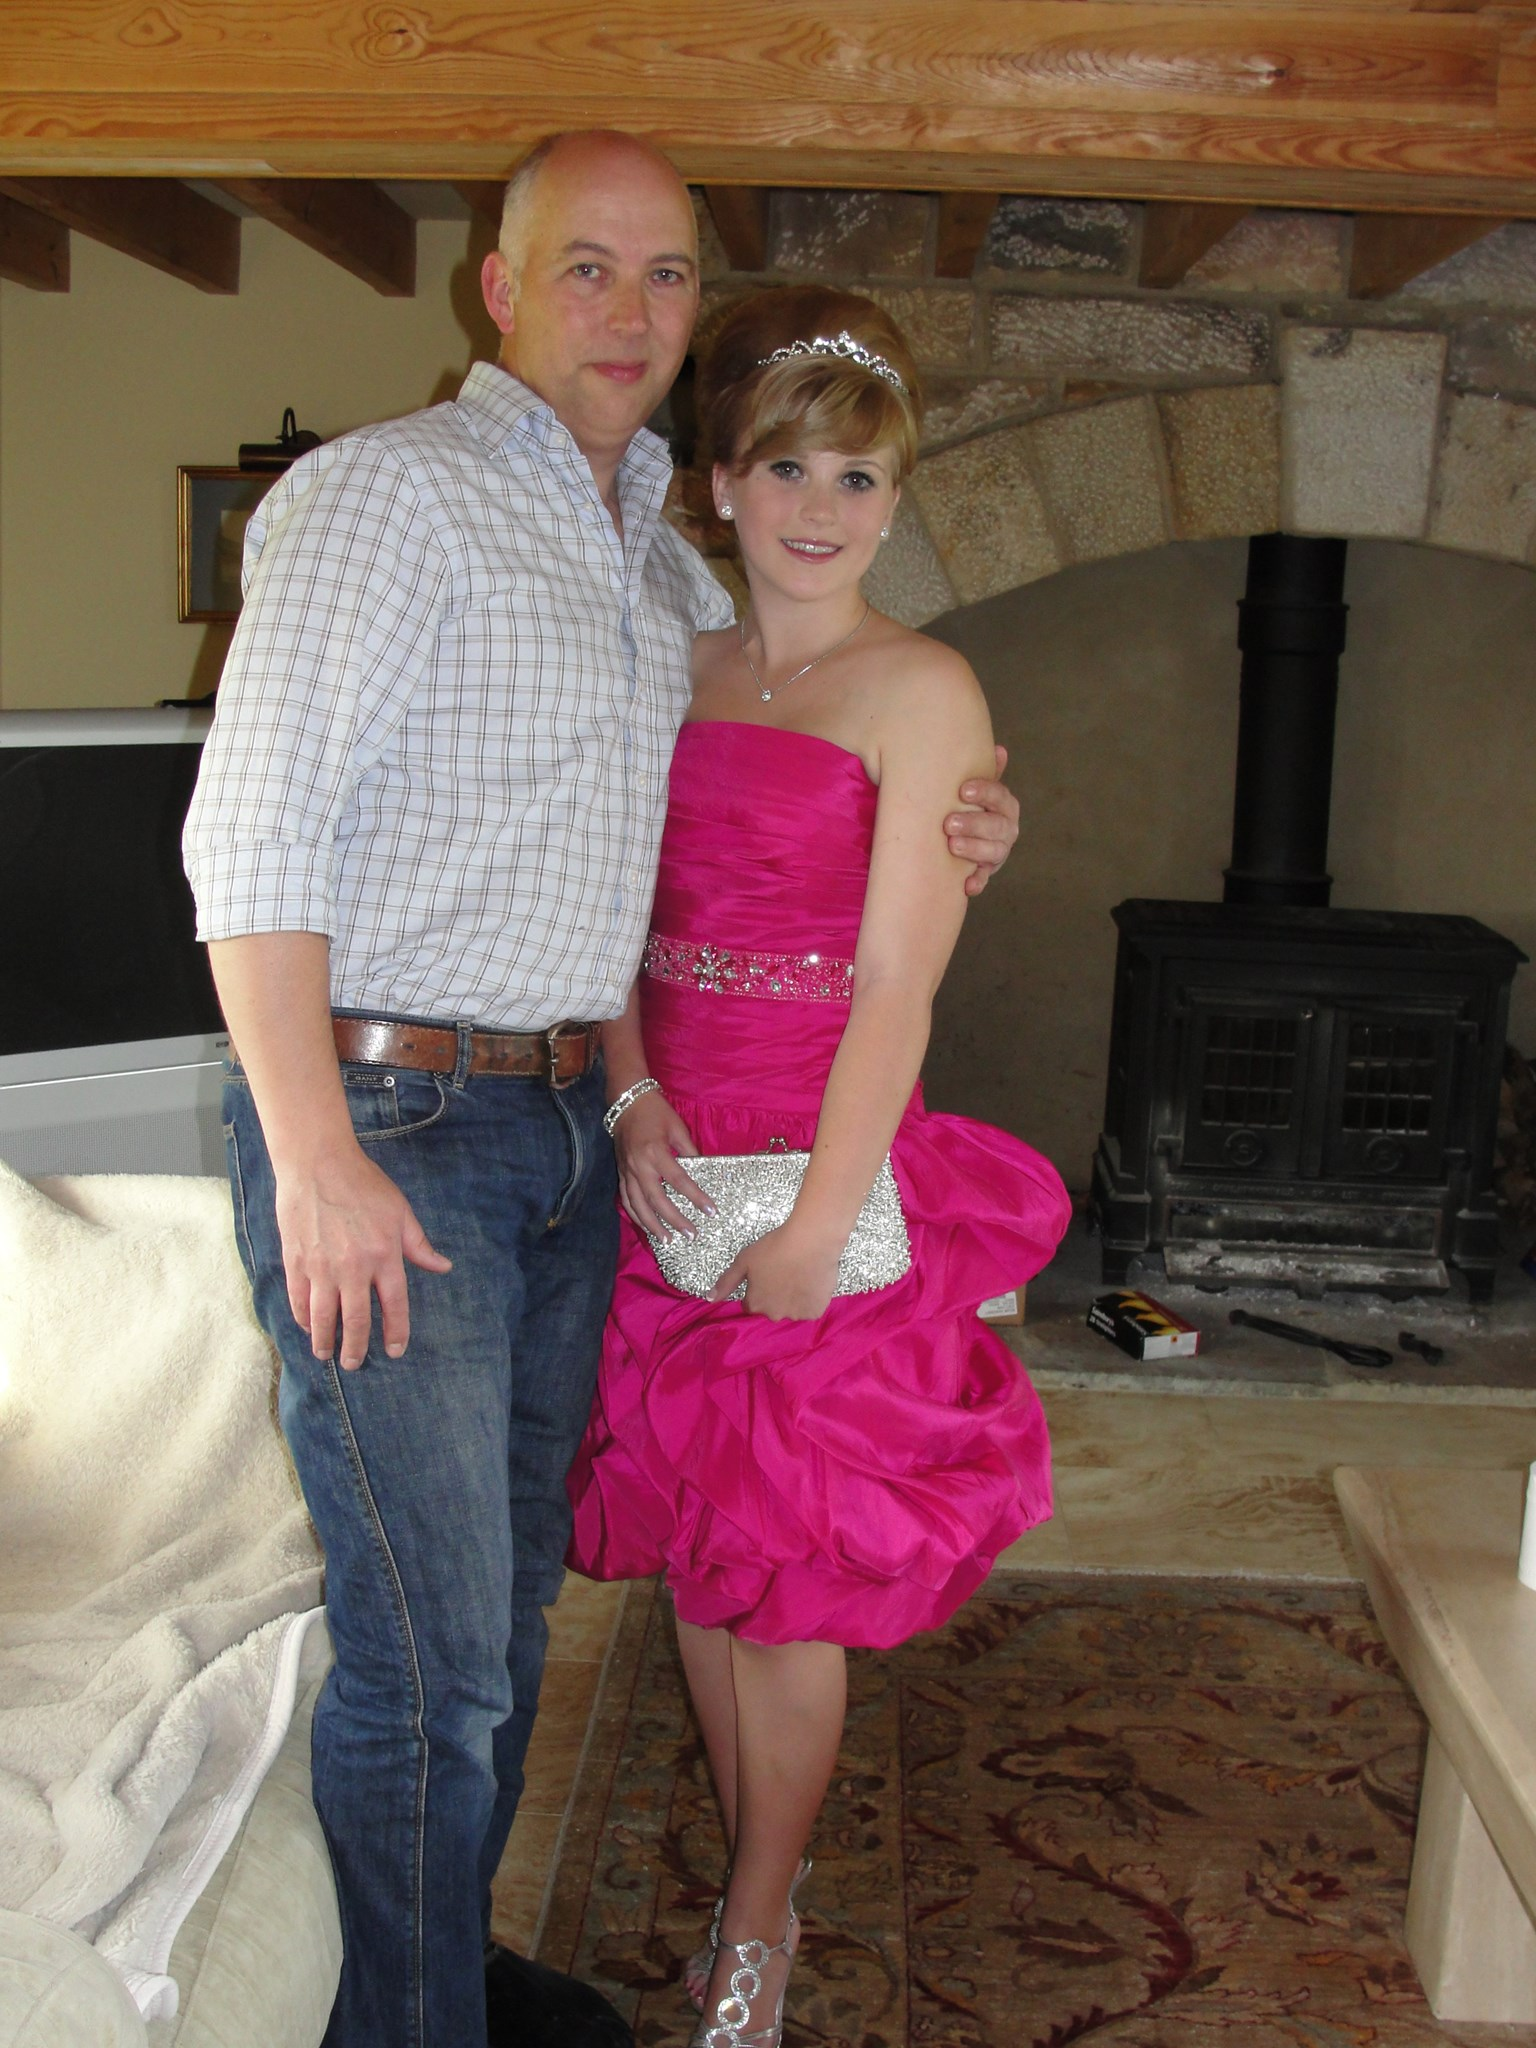 Helen and her dad prom night